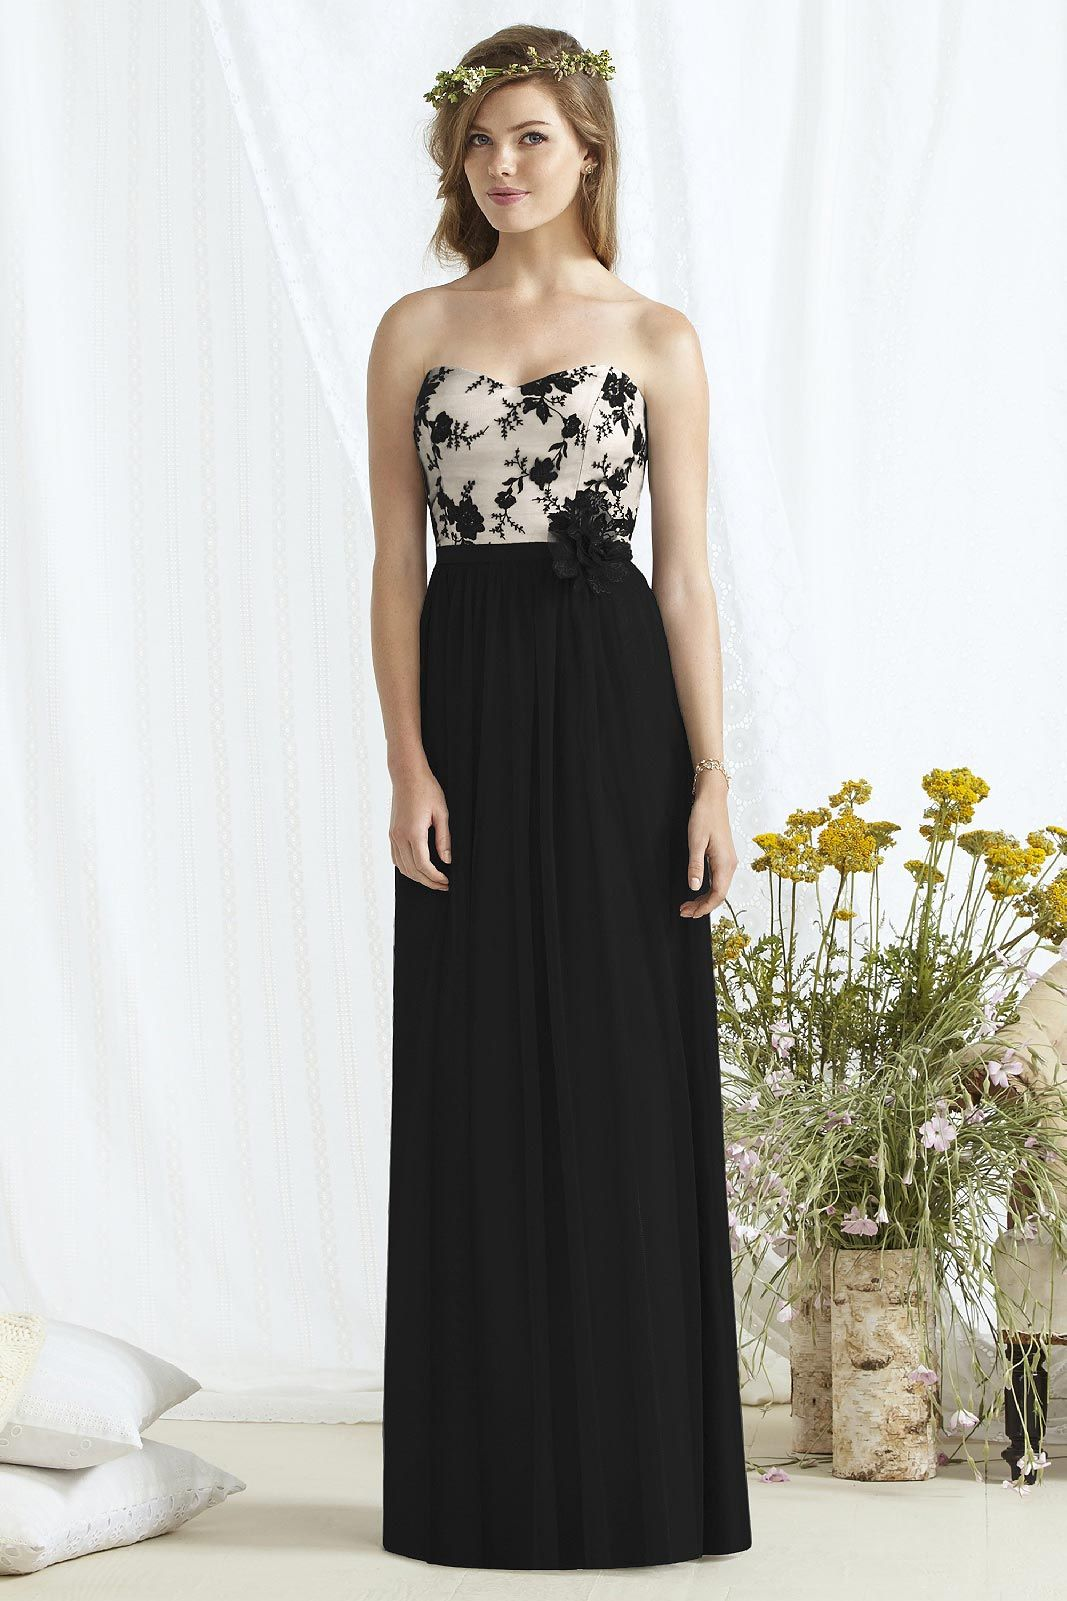 8171 by dessy social bridesmaids shopjoielle bridesmaid best online price and quick delivery for this dessy social bridesmaids 8171 dress featuring fleur embroidery over a stretch lining a strapless bodice ombrellifo Choice Image